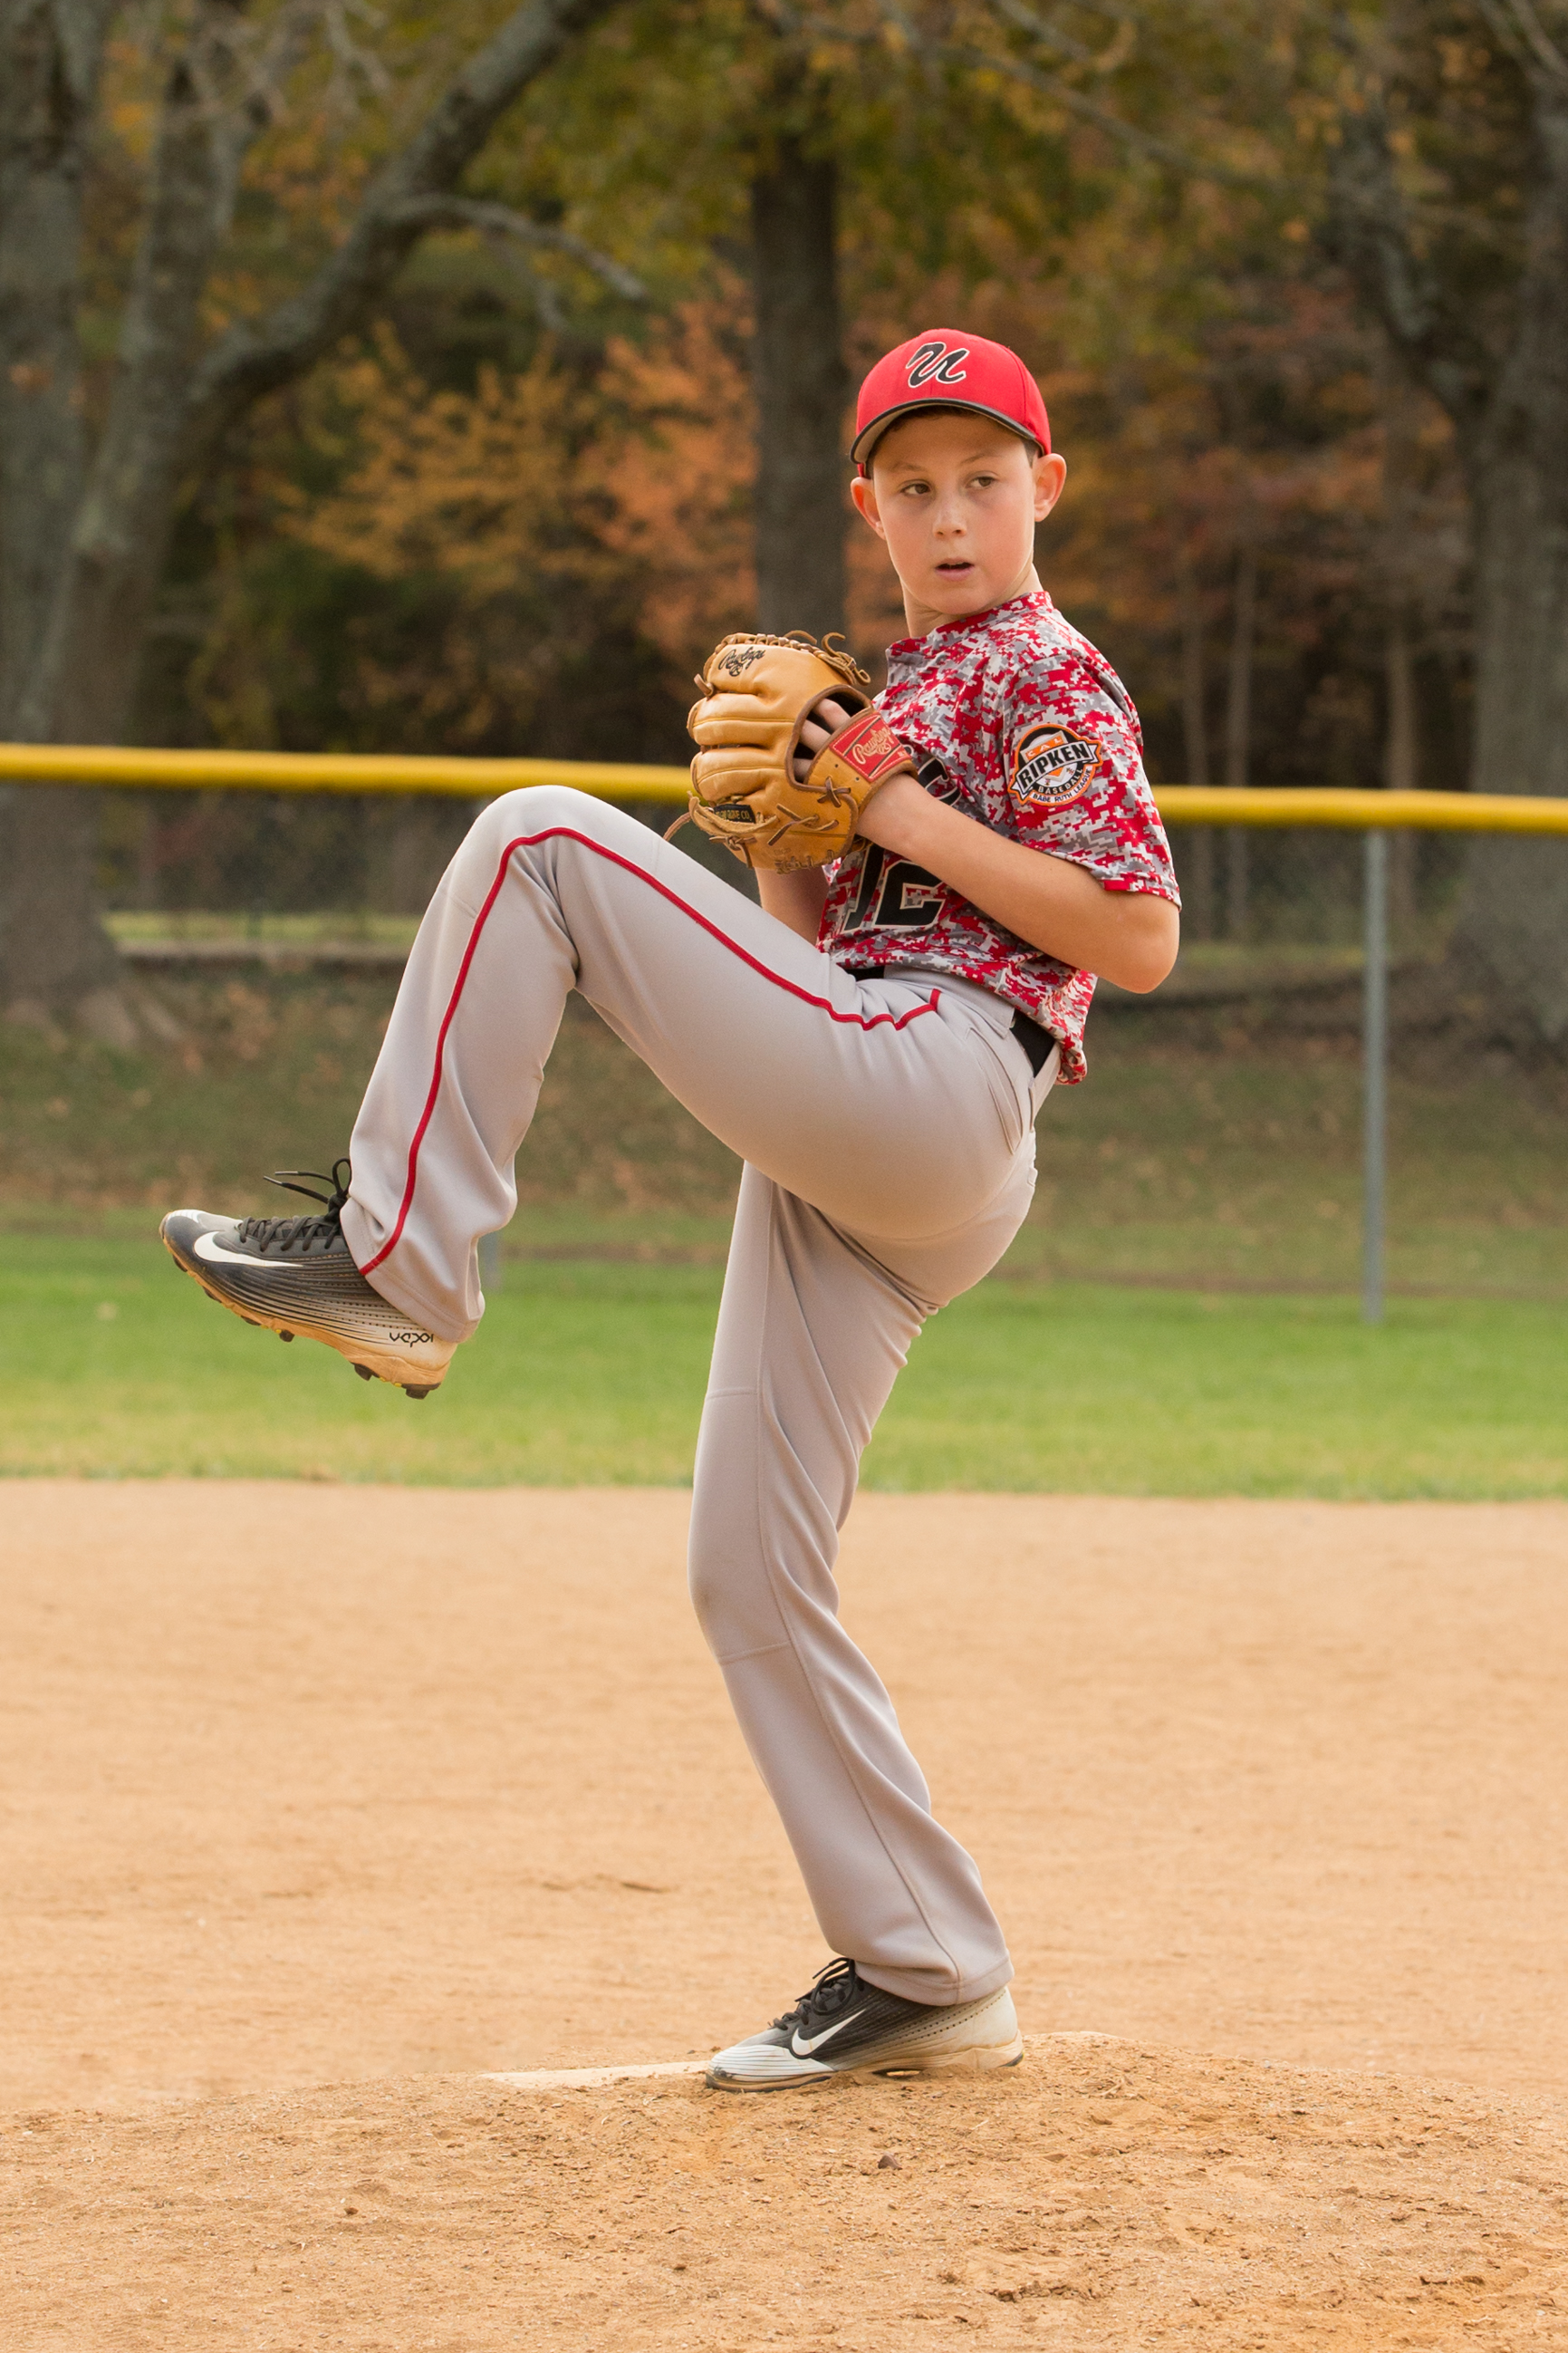 Sports Photography – A Young Player In Action